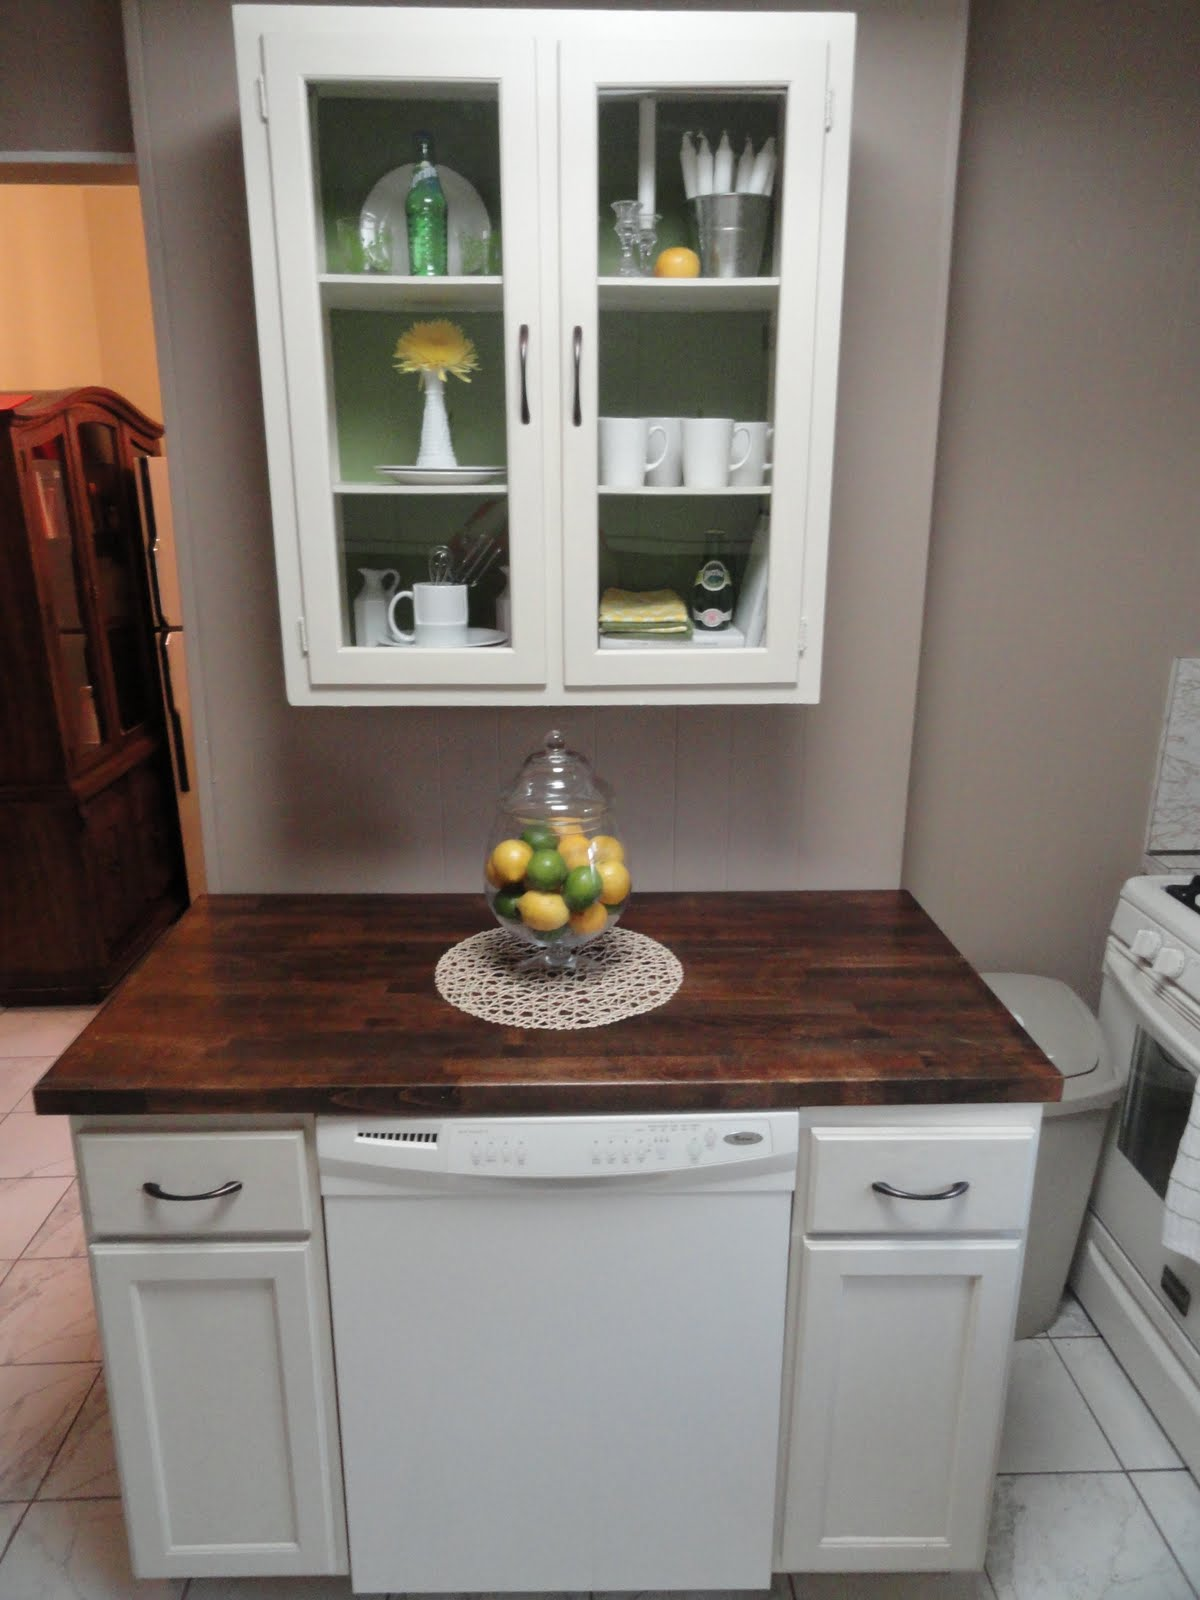 The Precious Little Things In Life Diy Dishwasher Cabinet